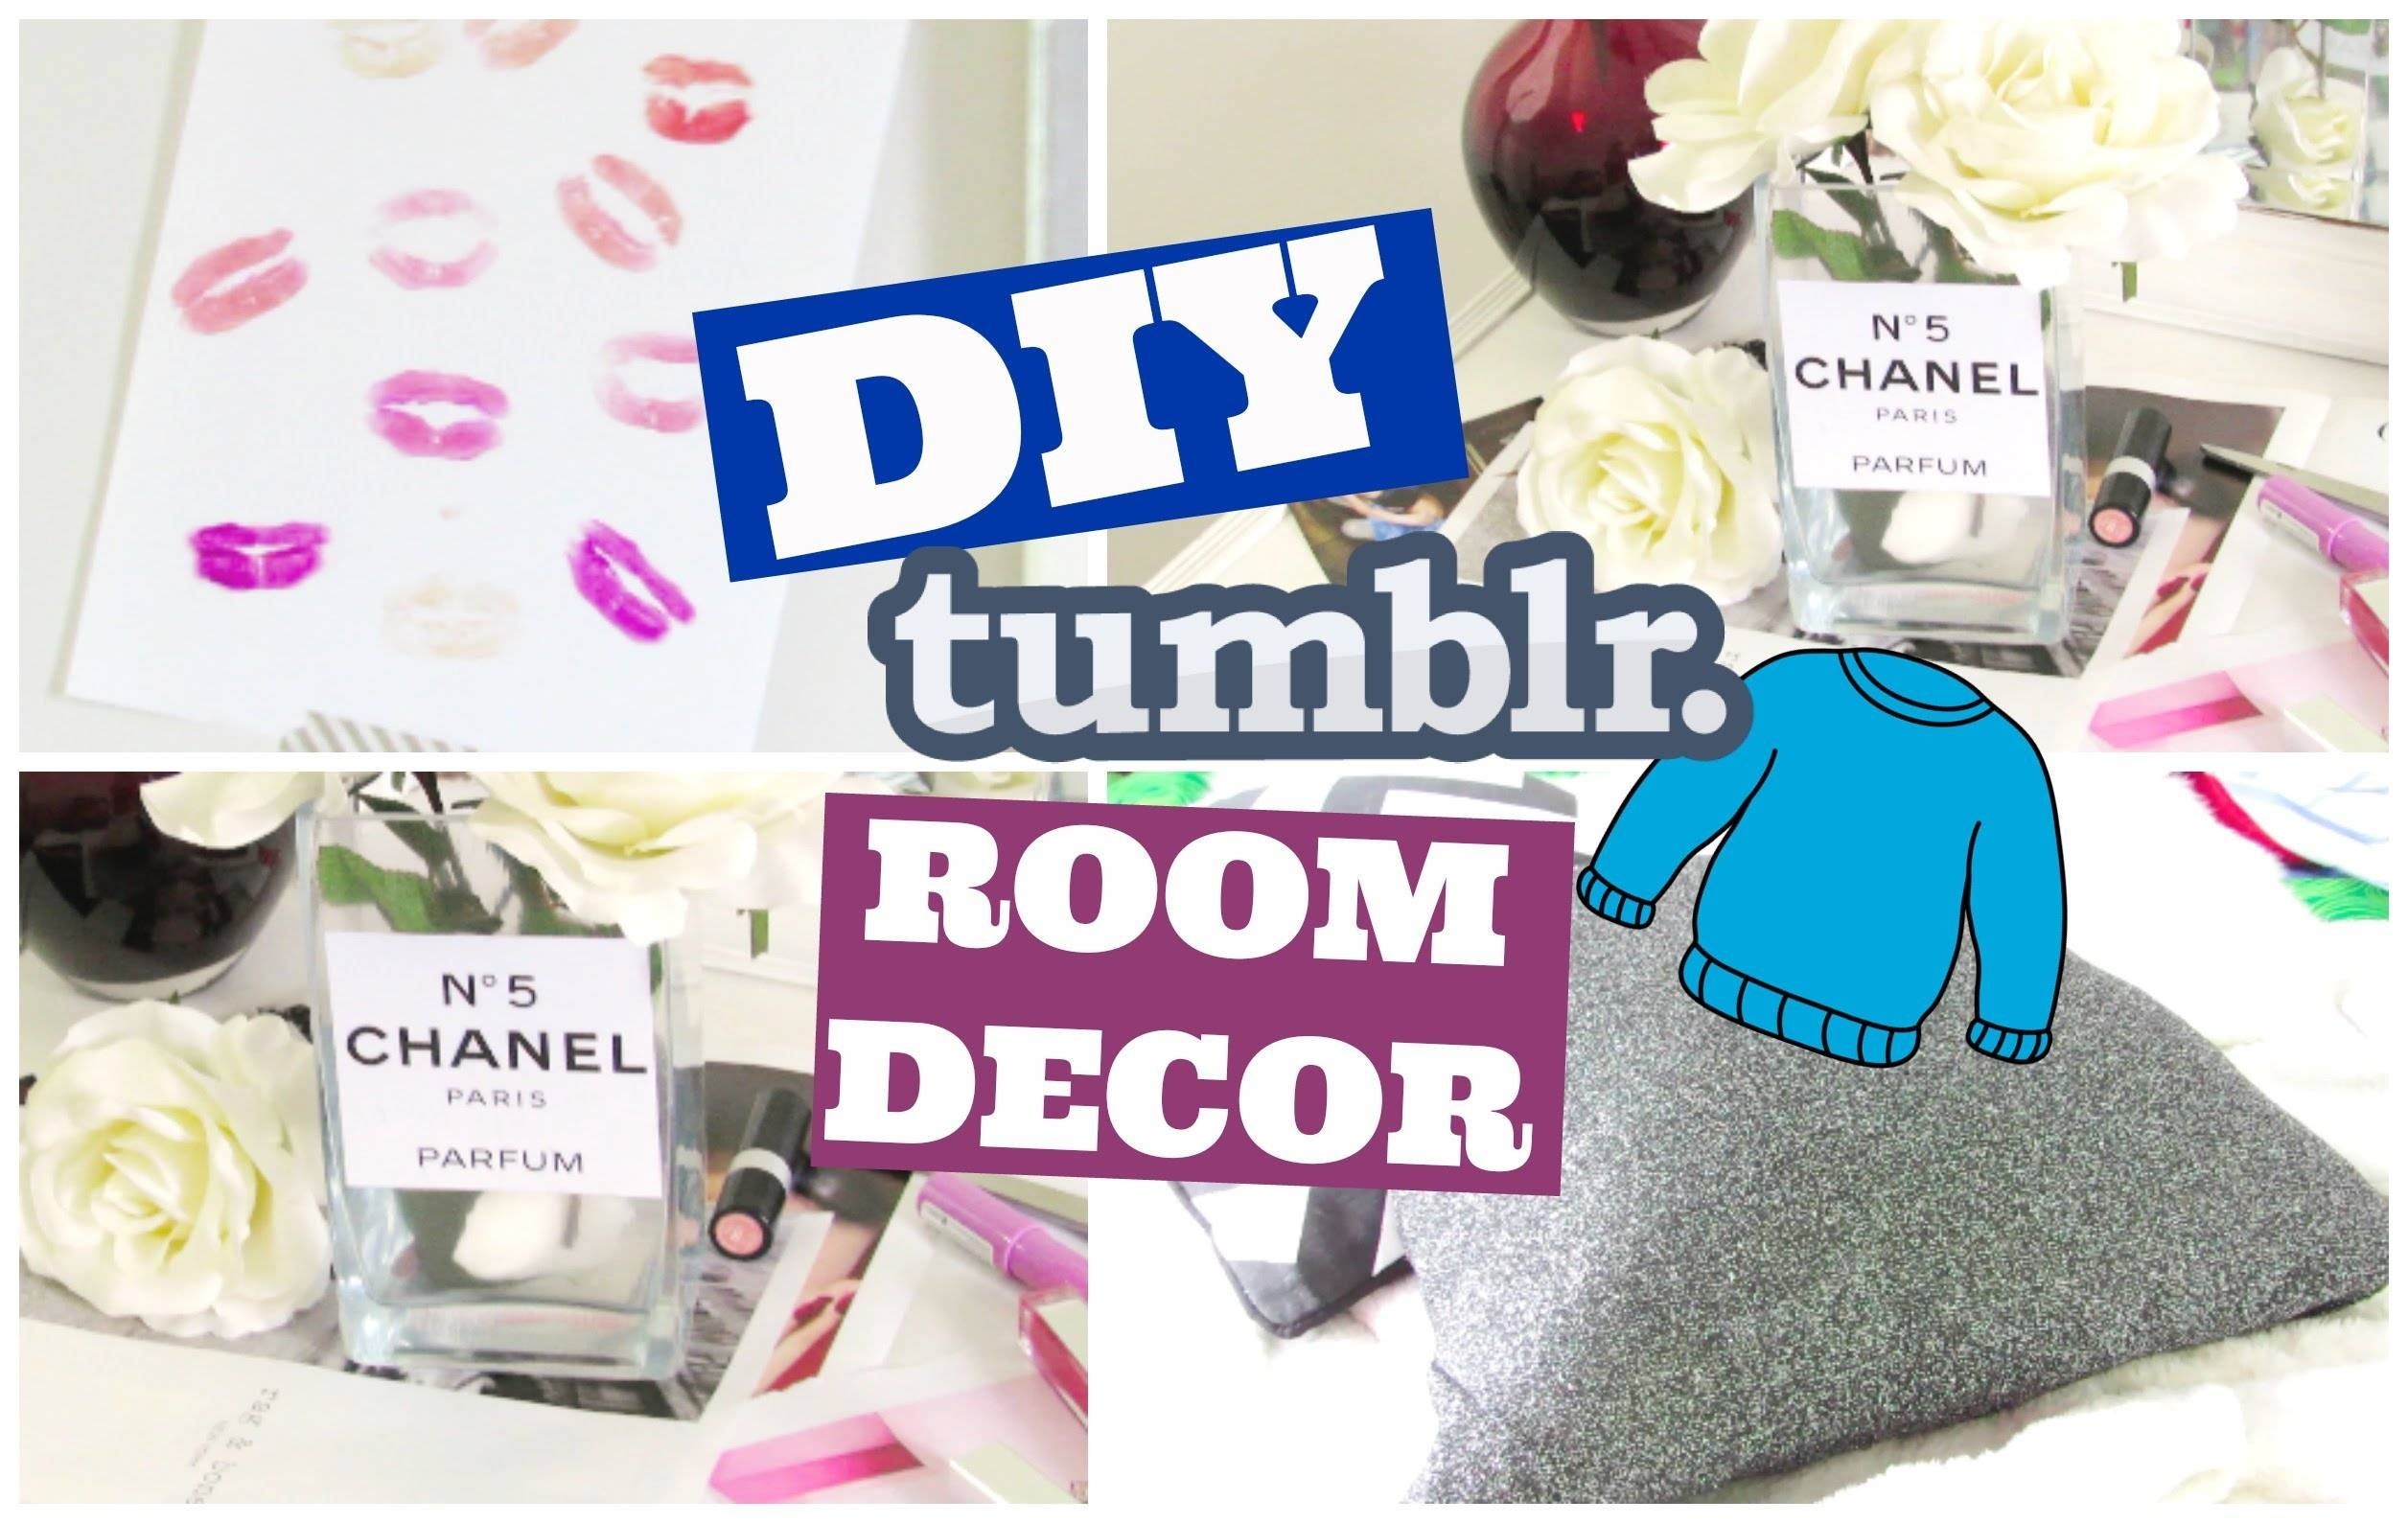 Diy Tumblr Room Decor For Teens – Chanel Vase, Accent Pillows And Throughout Recent Wall Art For Teens (View 13 of 20)